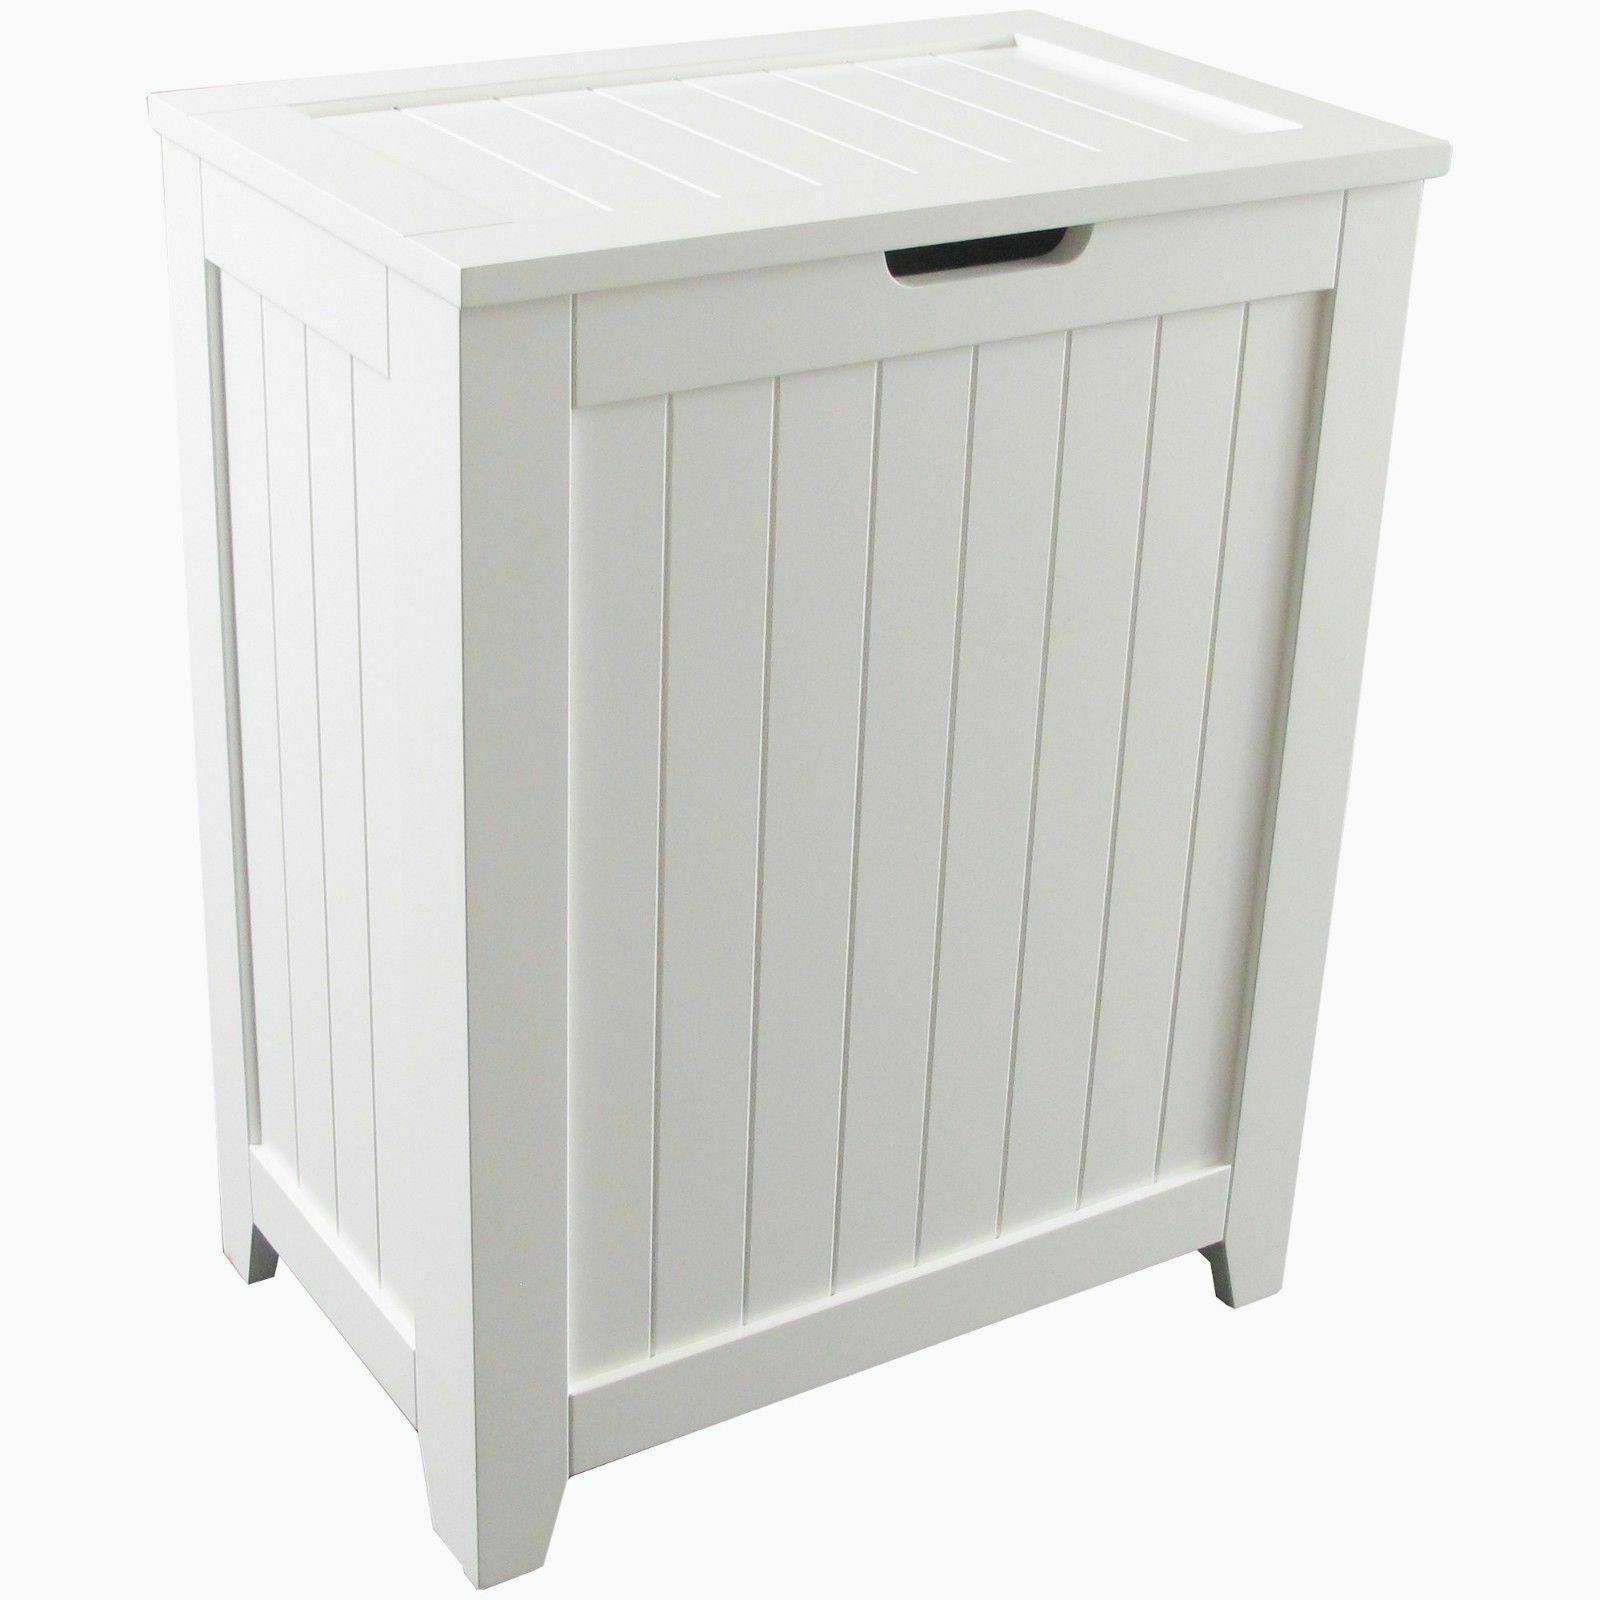 Wooden Laundry Hamper- White Basket Washing Bin Clothes Orga